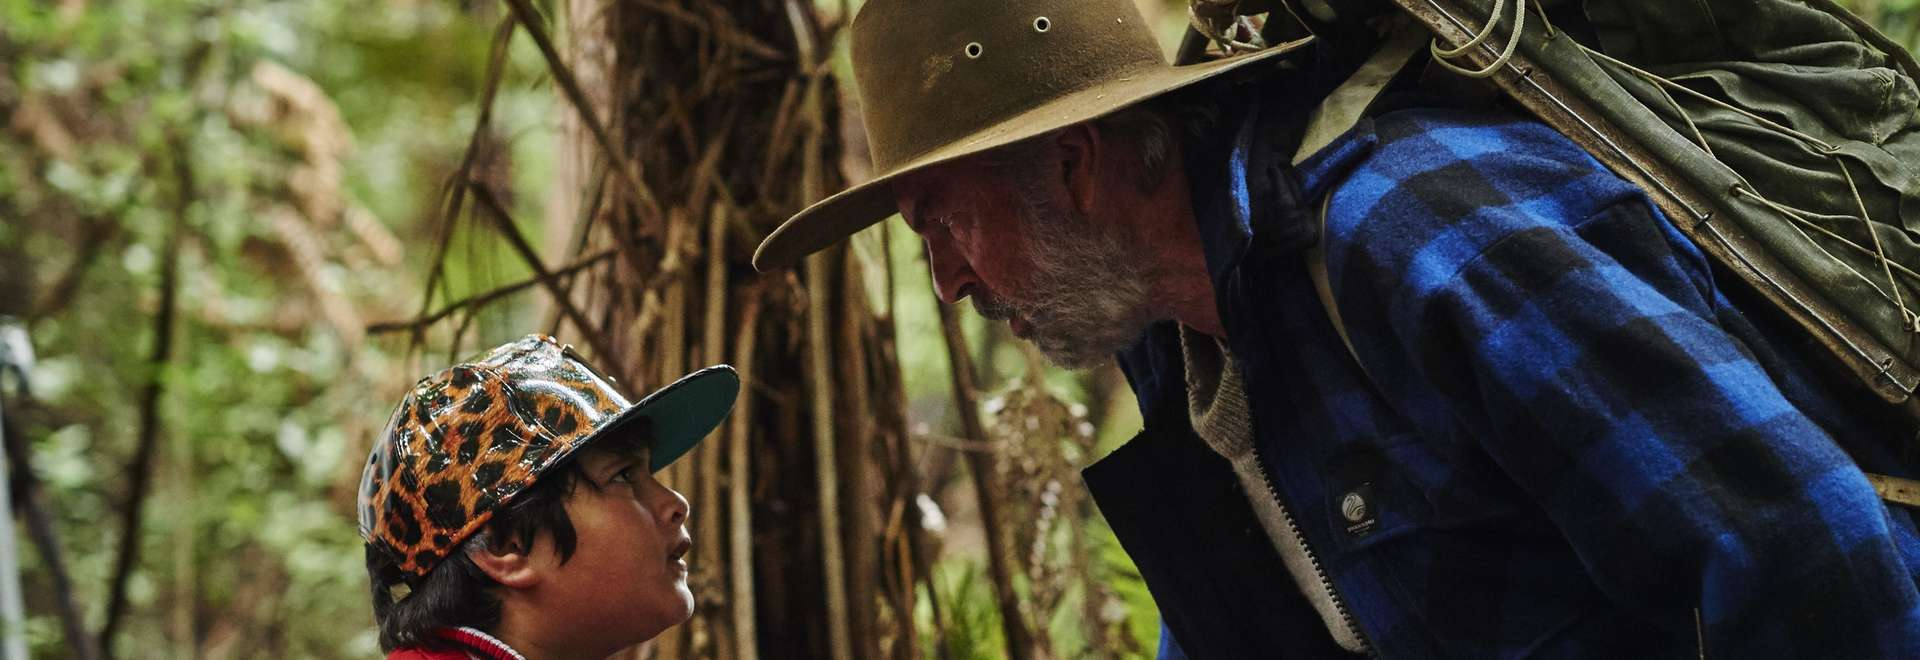 Hunt for the Wilderpeople Feature Image